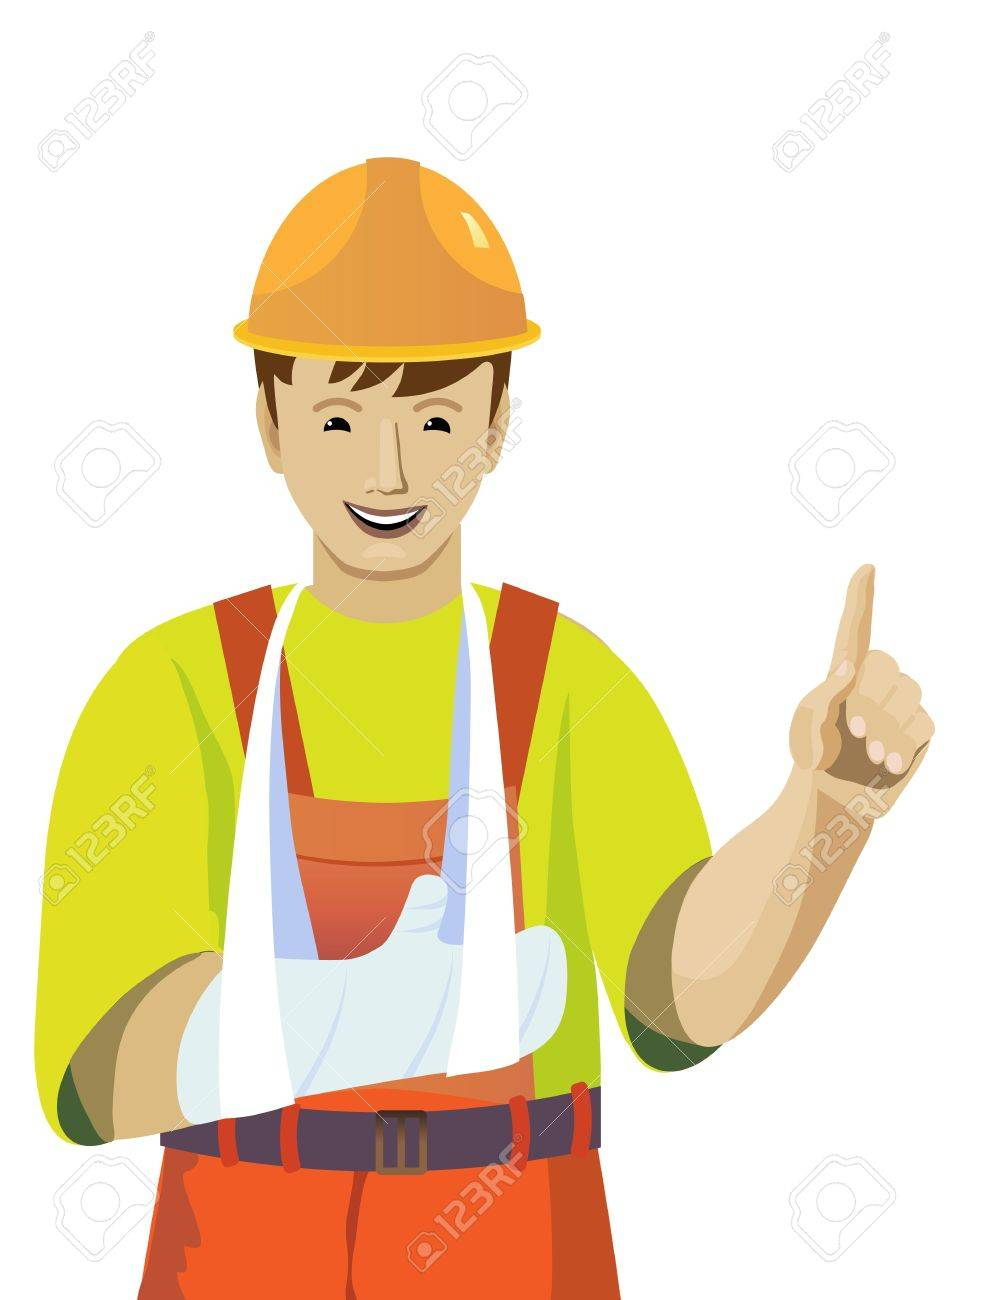 Illustration with the image of the working hand injury Stock Vector - 21910783